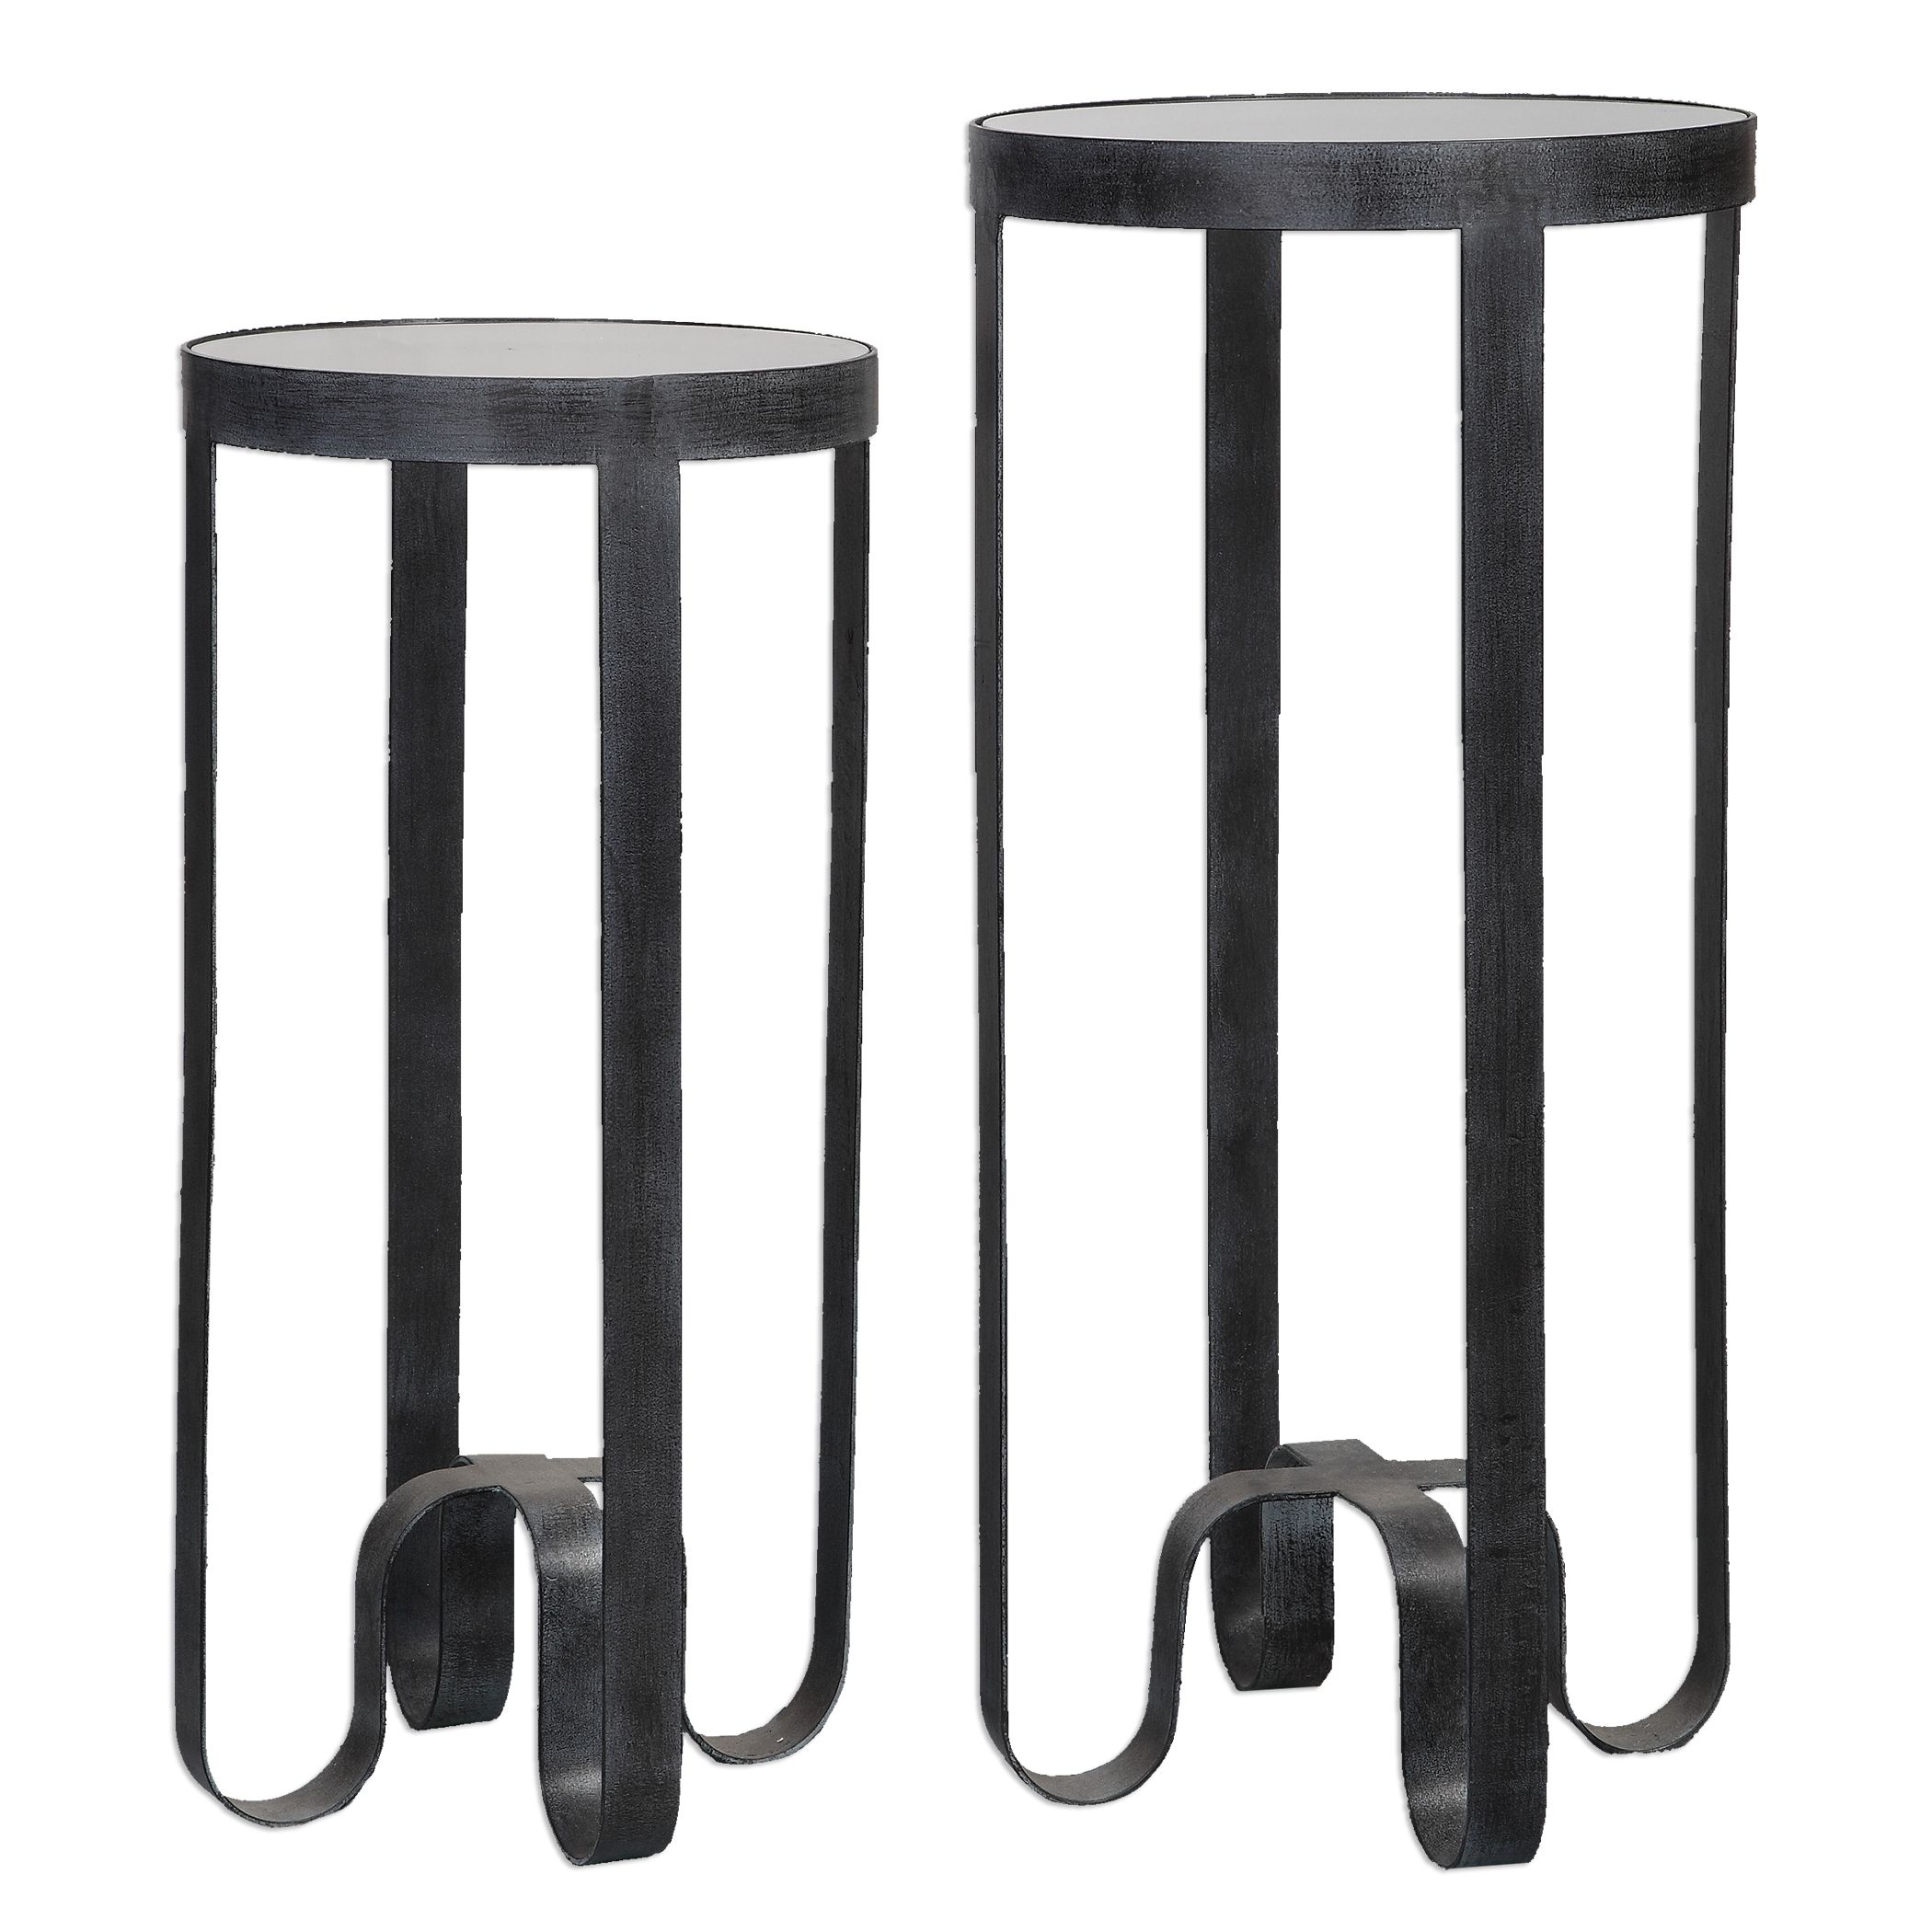 Uttermost Accent Furniture Arusi Strapped Iron Accent Tables, S/2 - Item Number: 24598